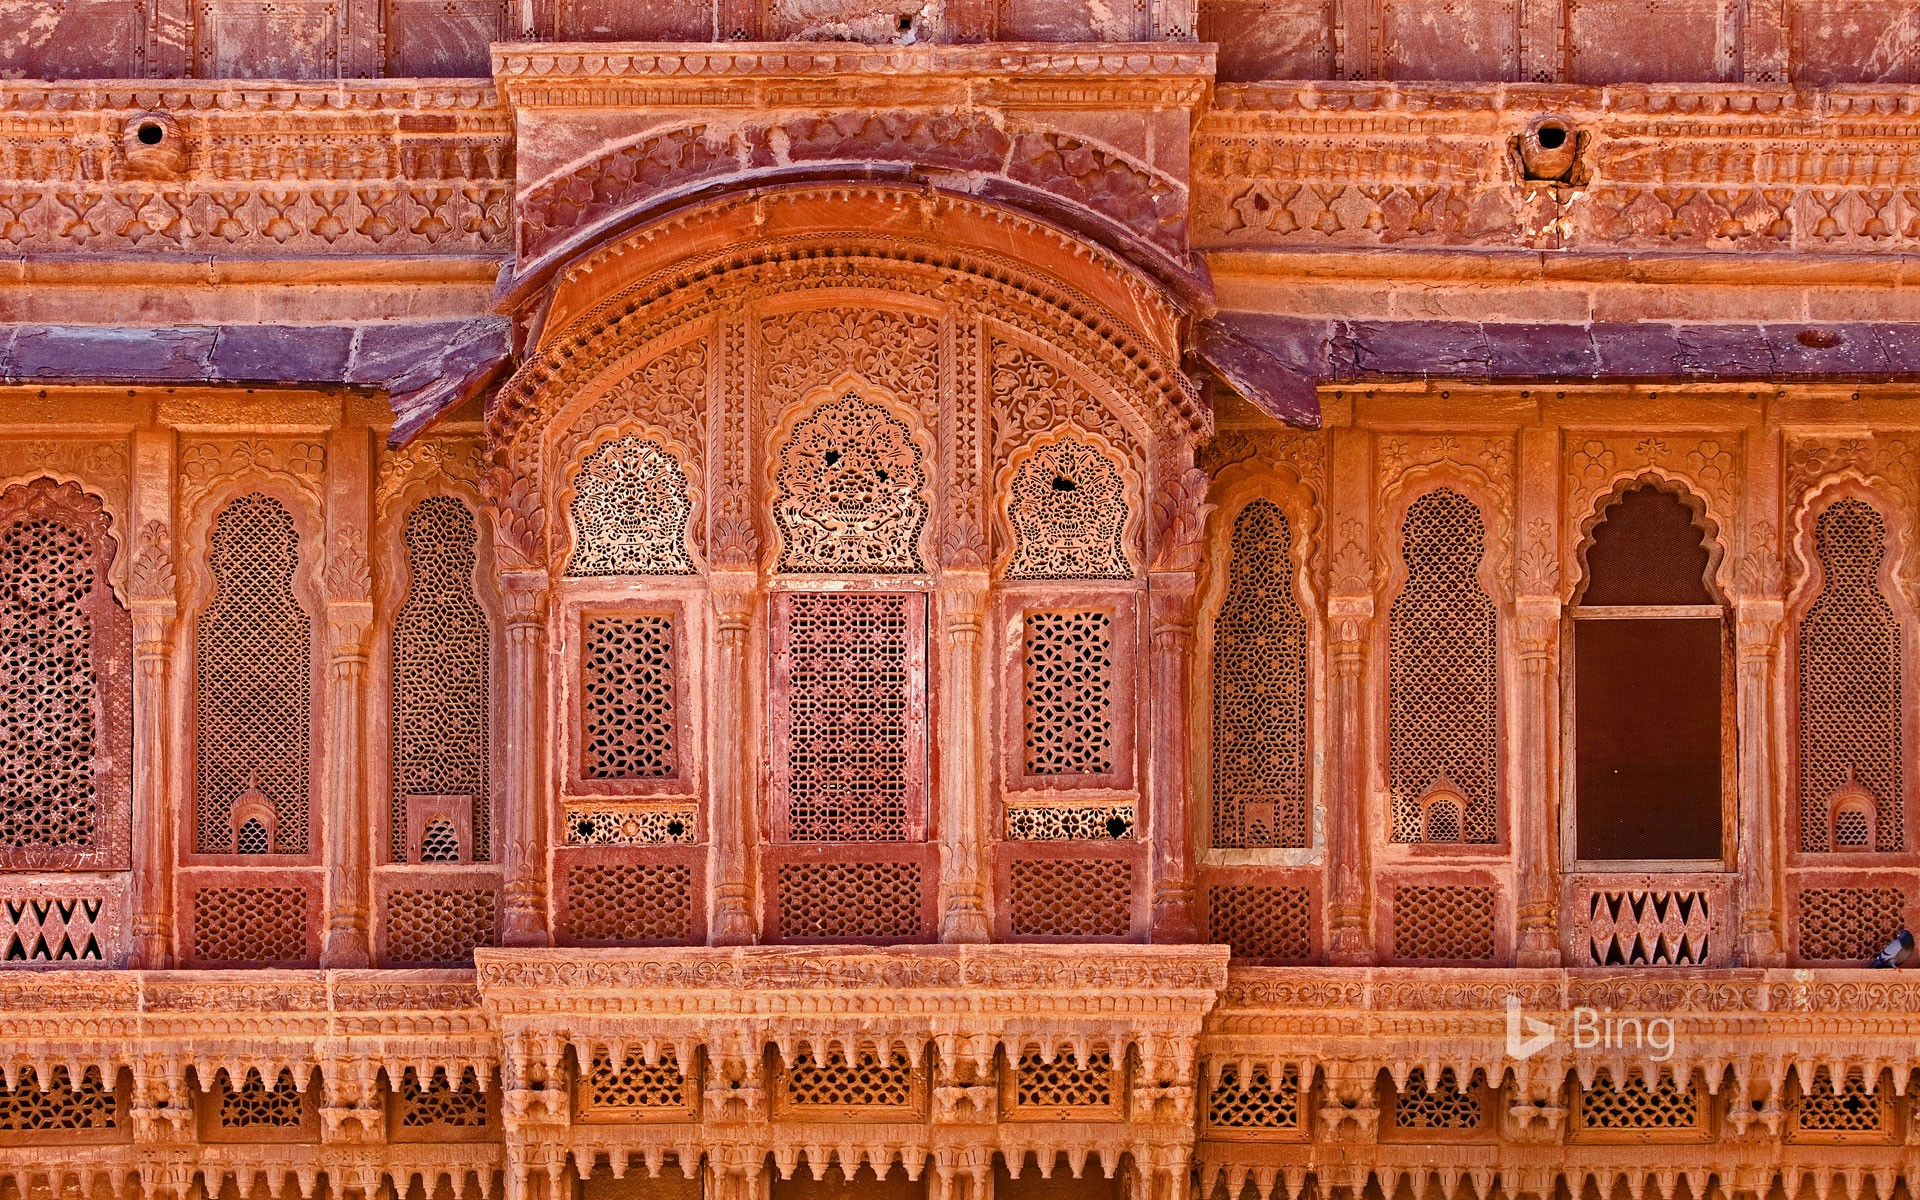 Exterior of Mehrangarh Fort in Jodhpur, India